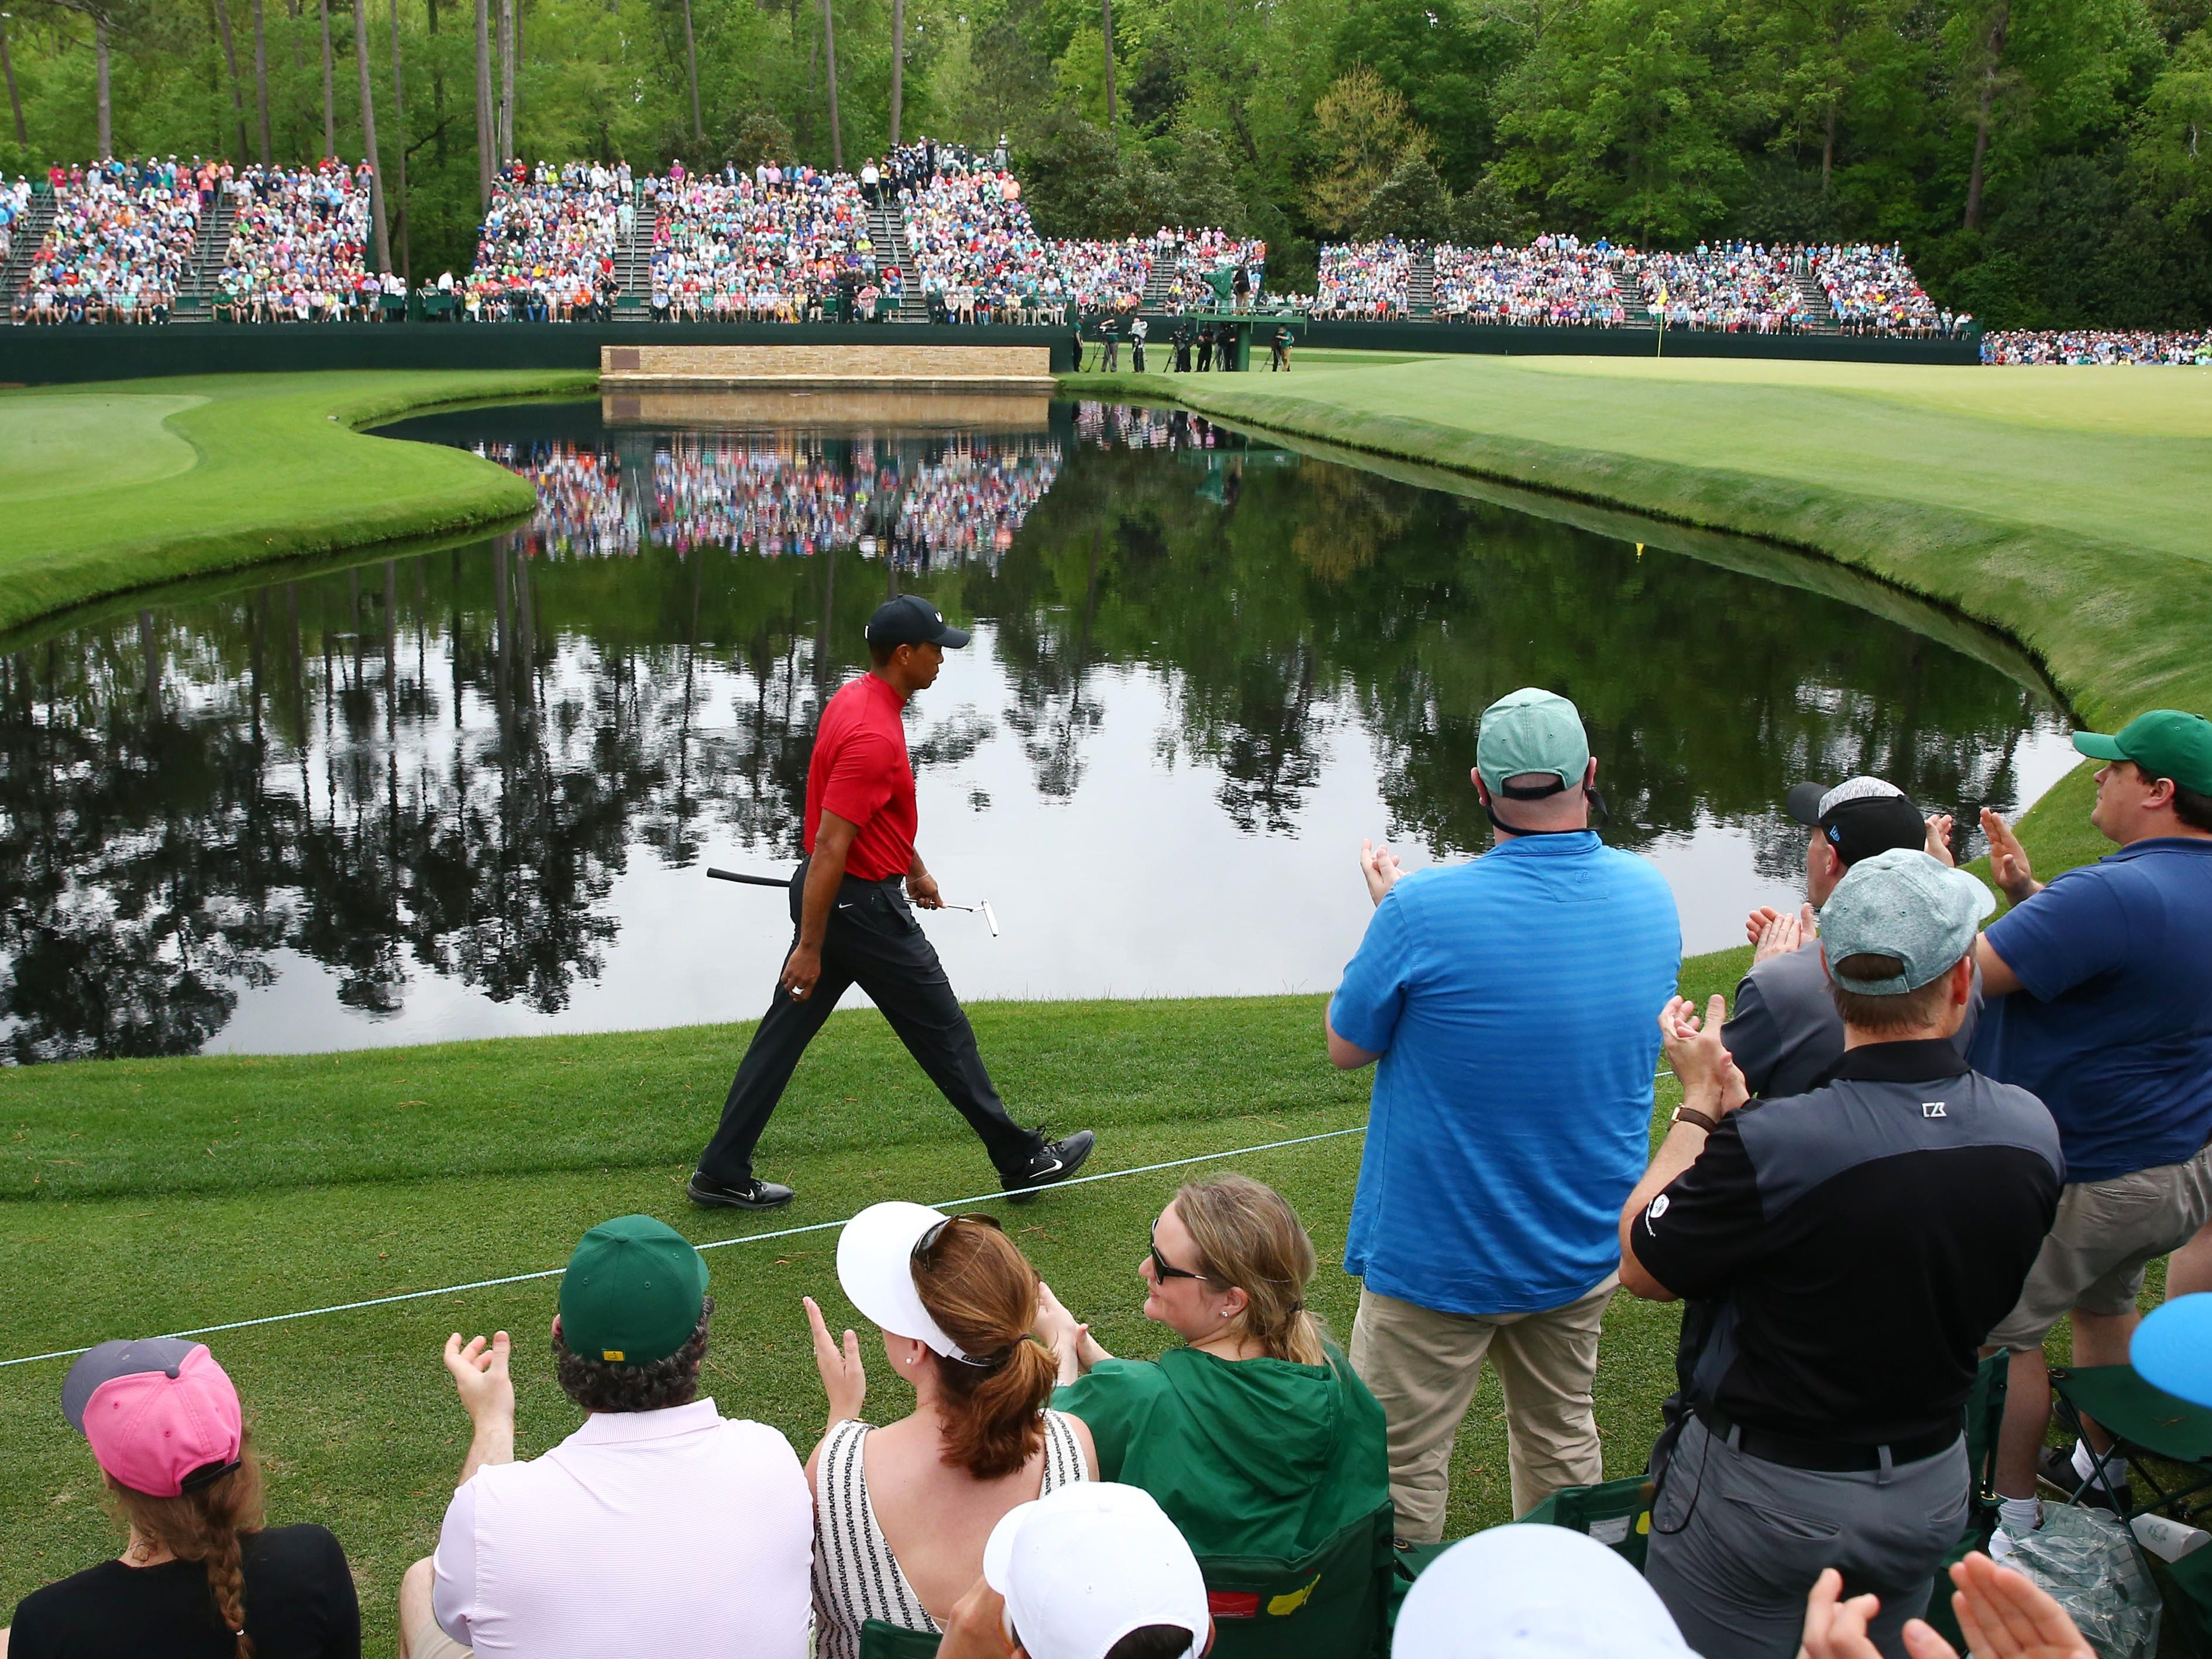 Tiger Woods walks to the 15th green during the final round of The Masters at Augusta National Golf Club.